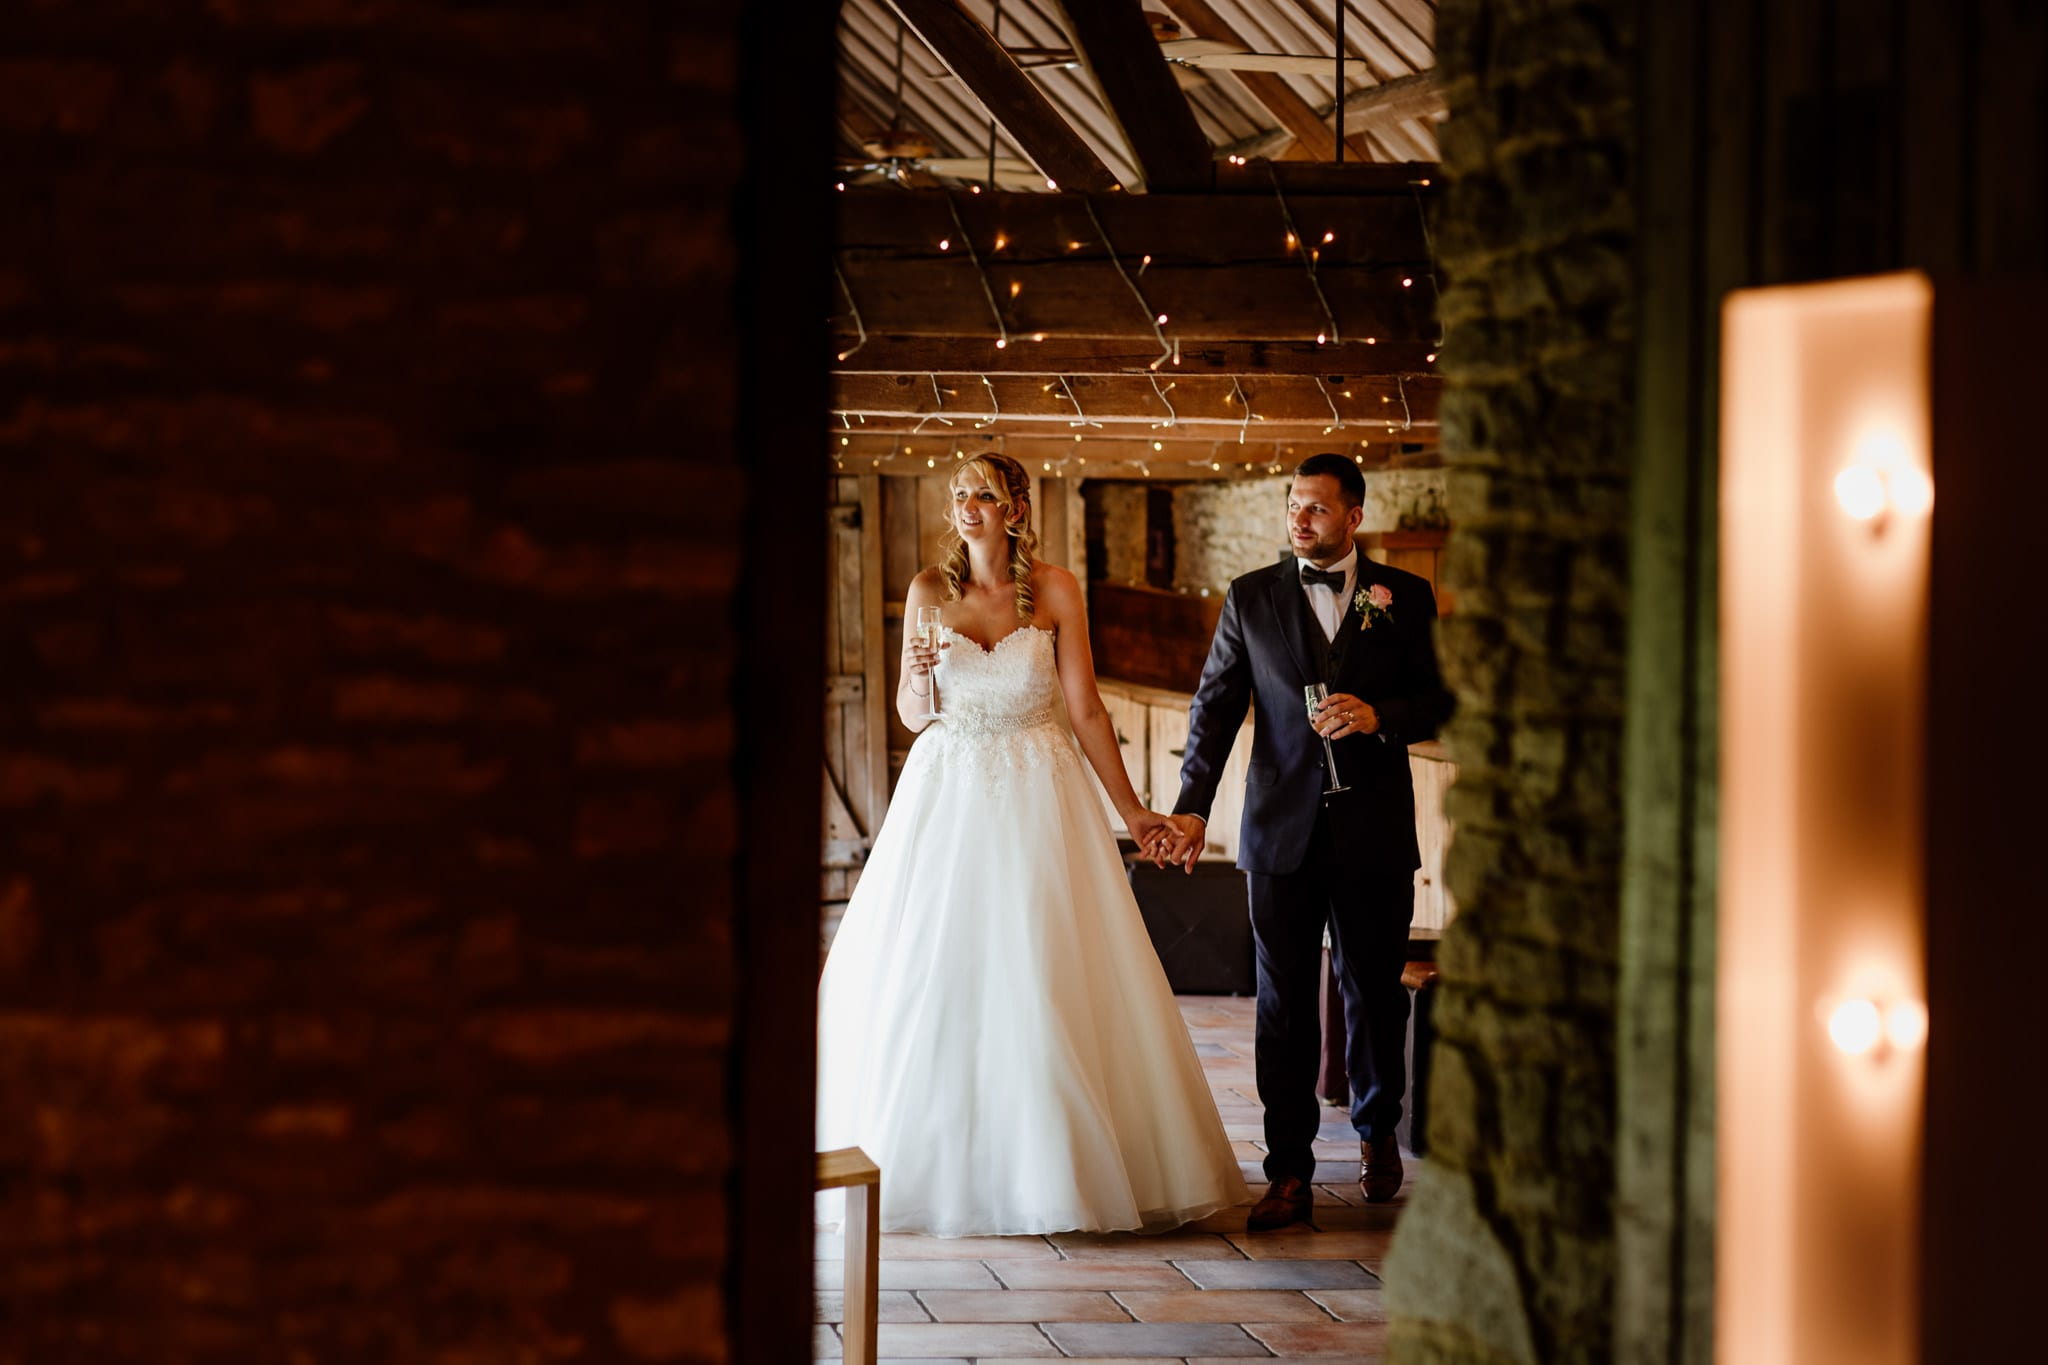 Just married at The Tythe Barn Launton, Oxfordshire Wedding Photography